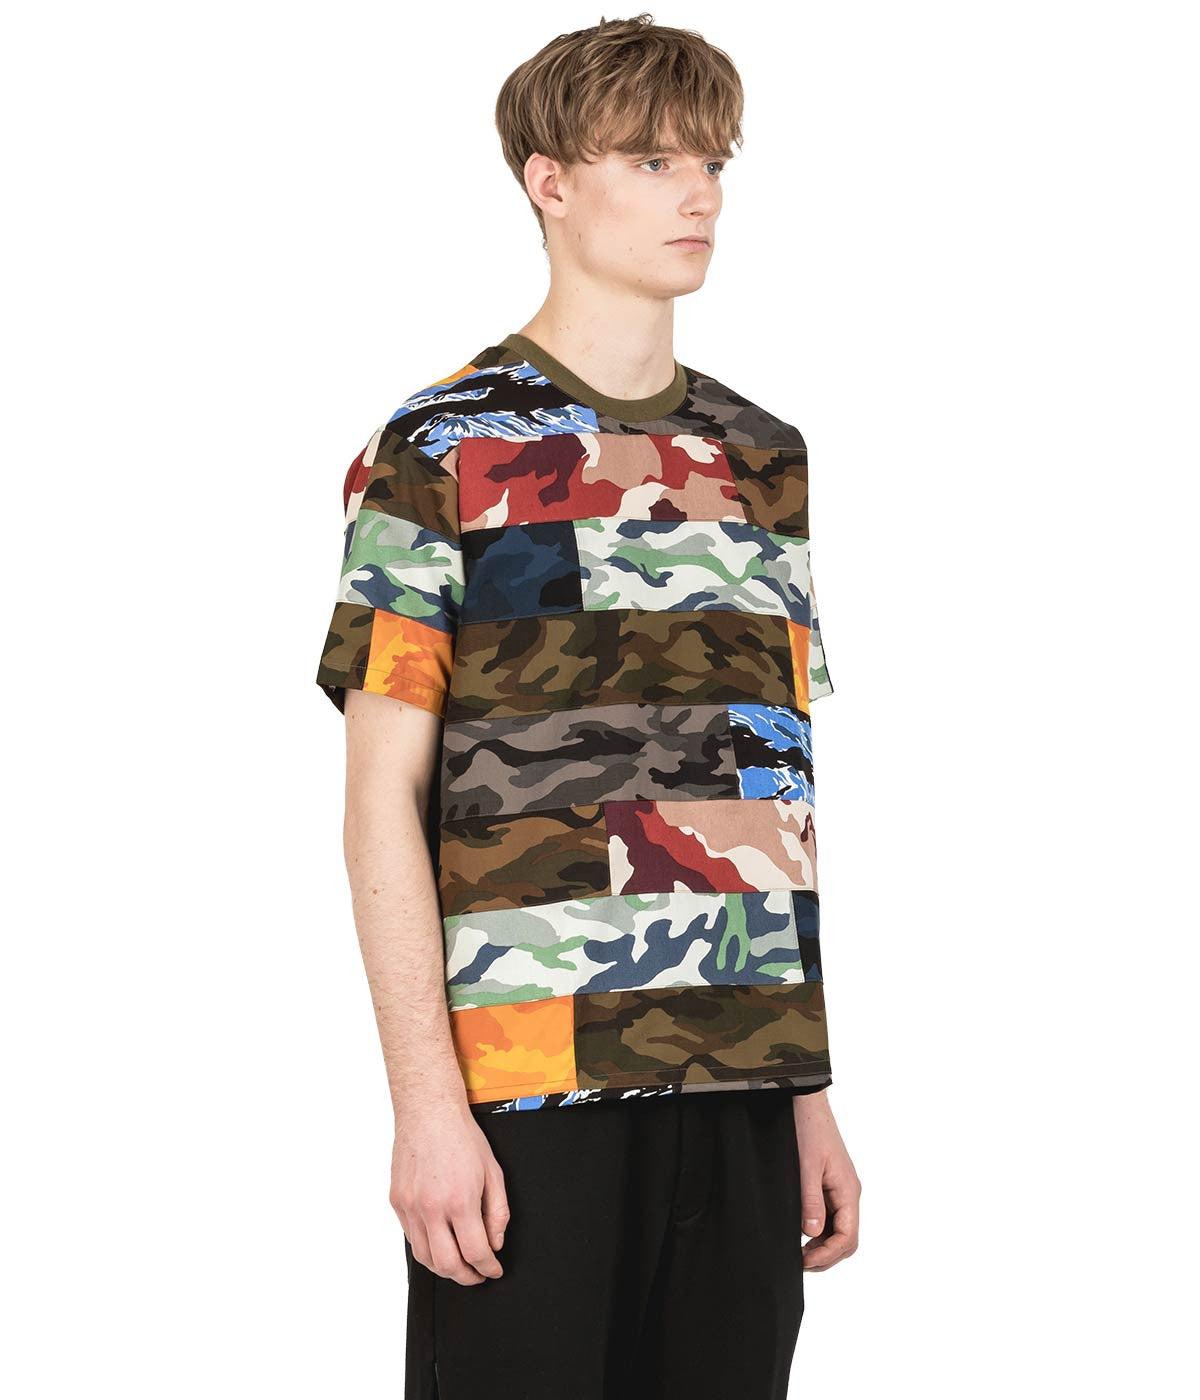 Military Camouflage Brick T-Shirt